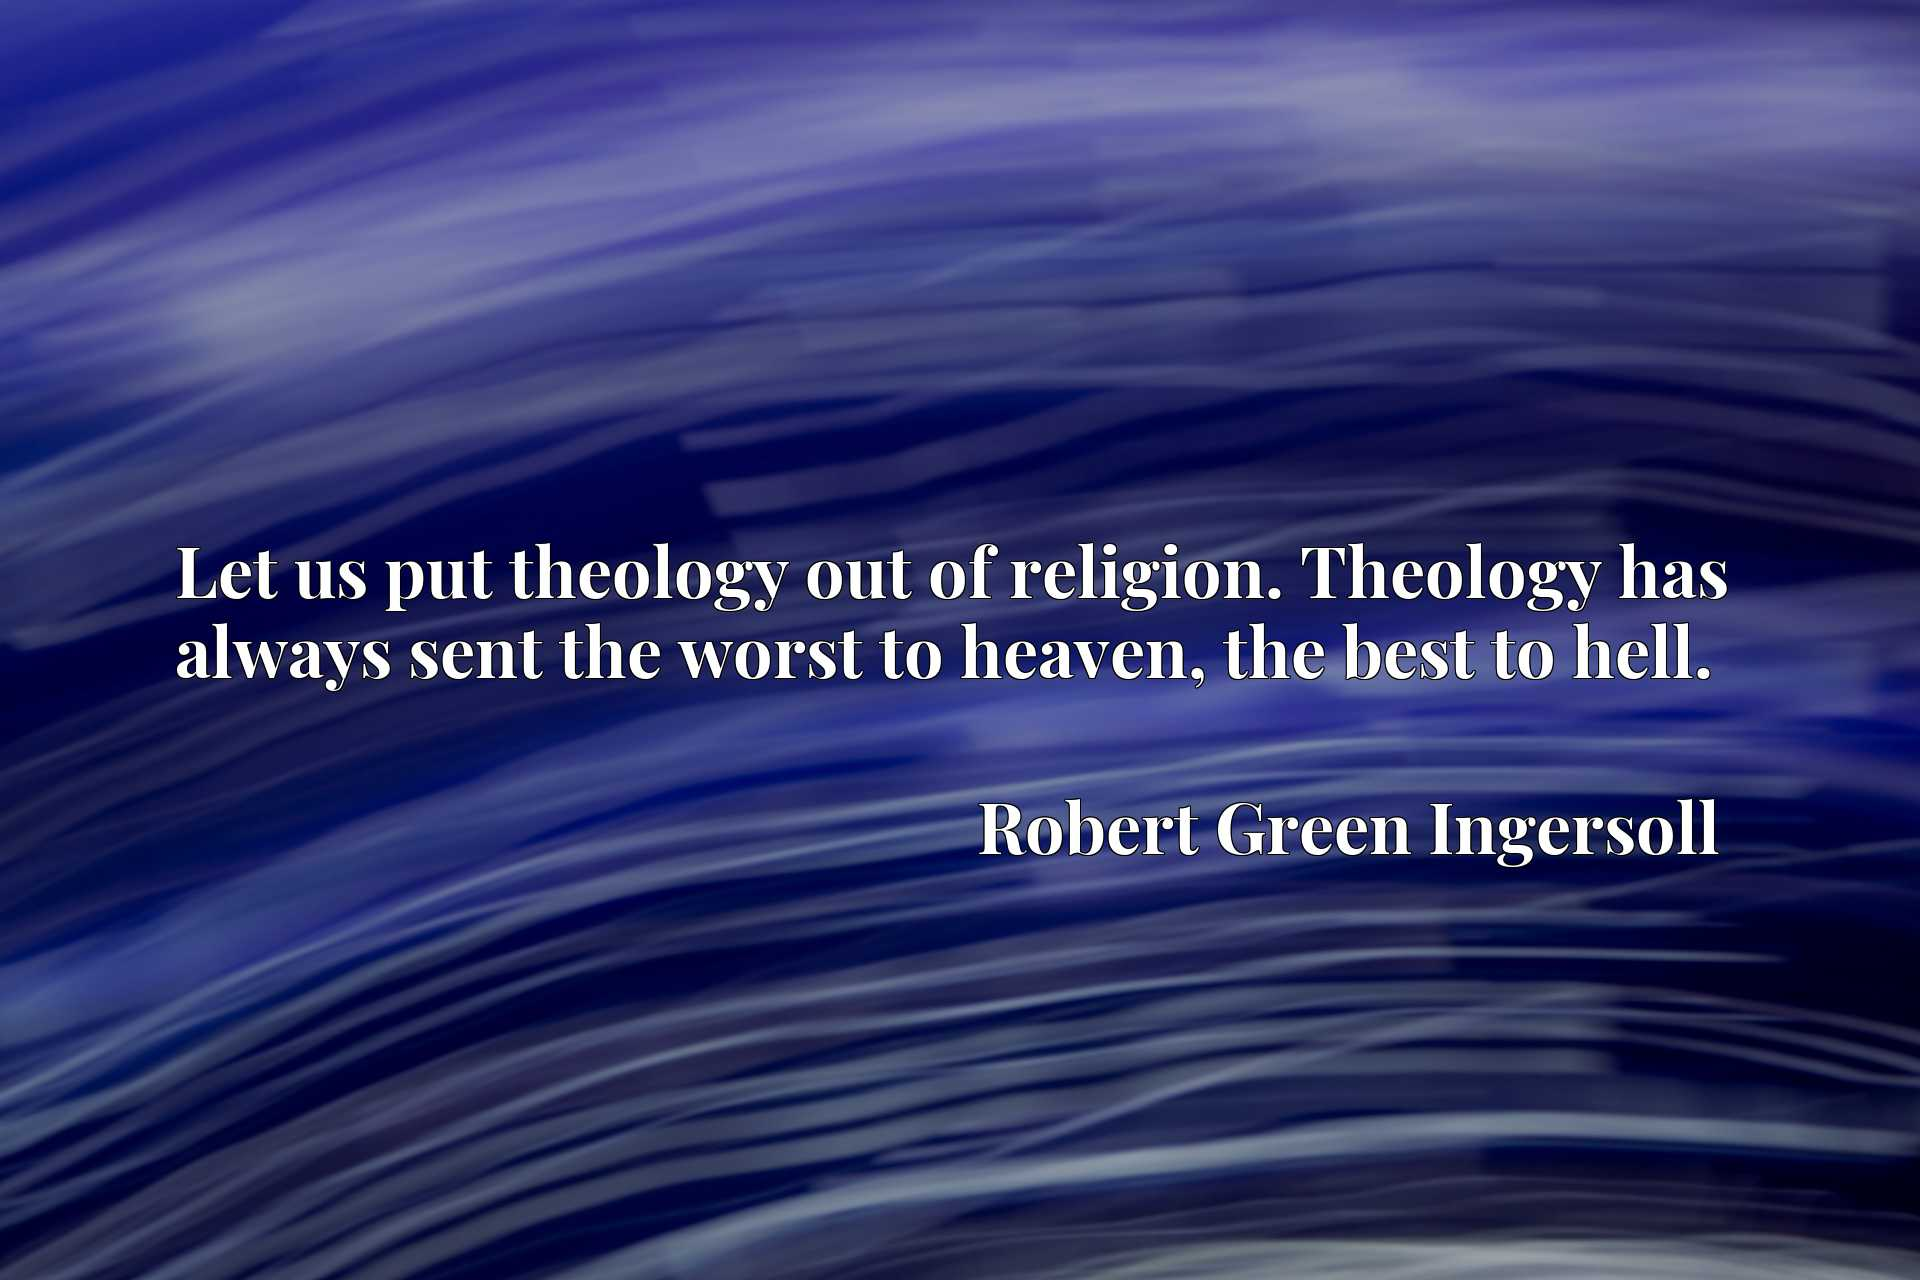 Let us put theology out of religion. Theology has always sent the worst to heaven, the best to hell.